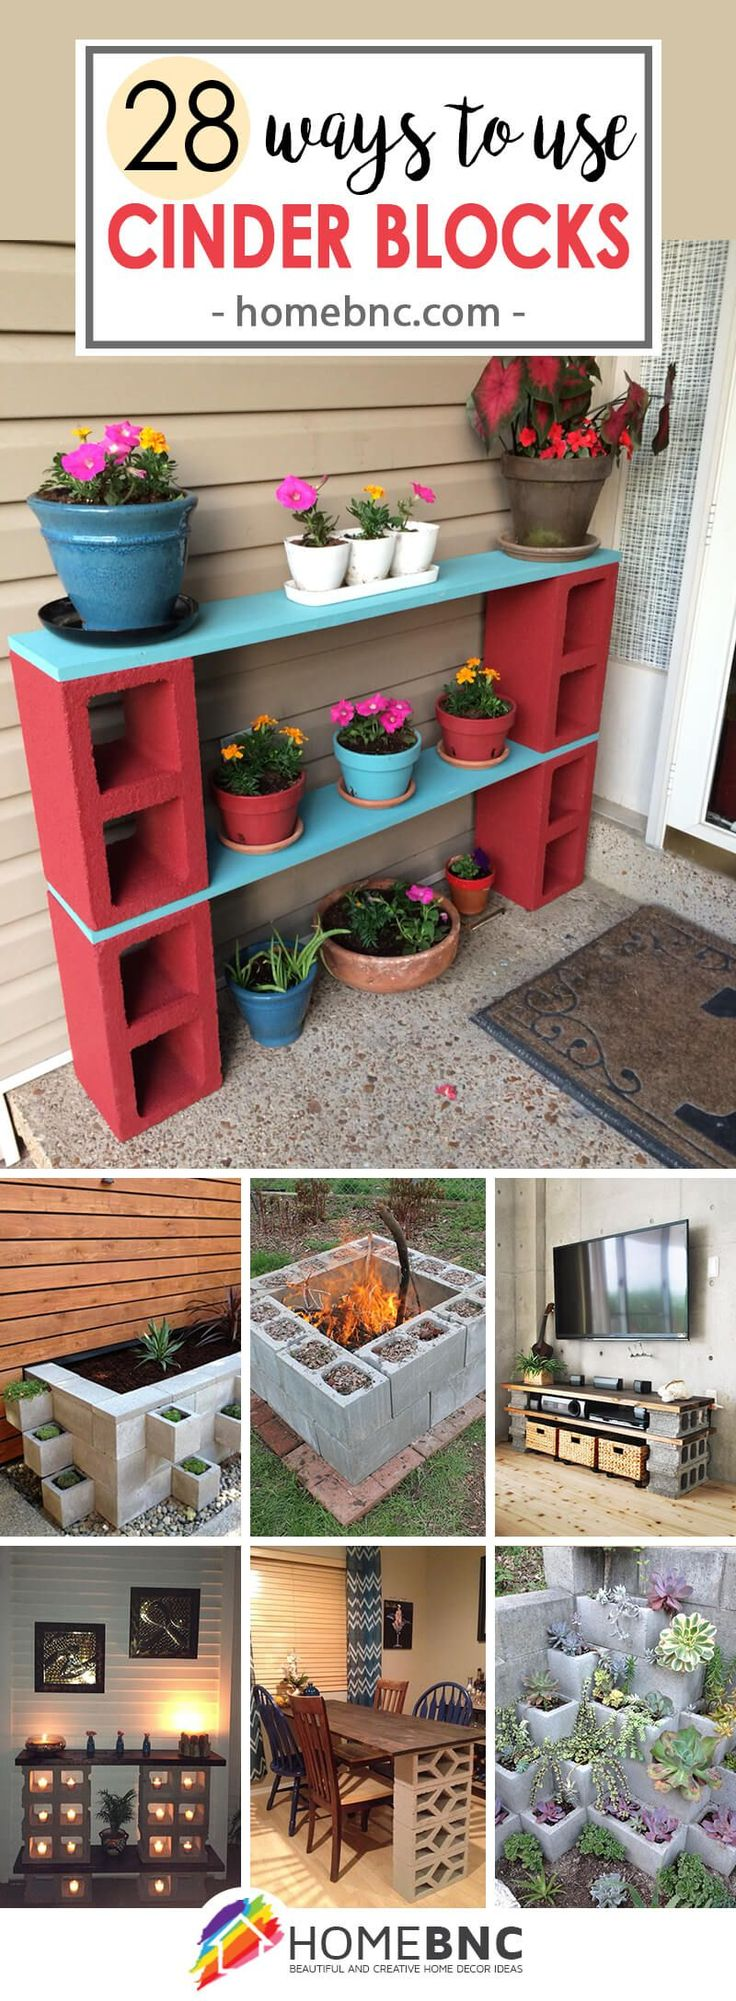 Diy patio furniture cinder blocks - 28 Practical Functional And Creative Ways To Use Cinder Blocks